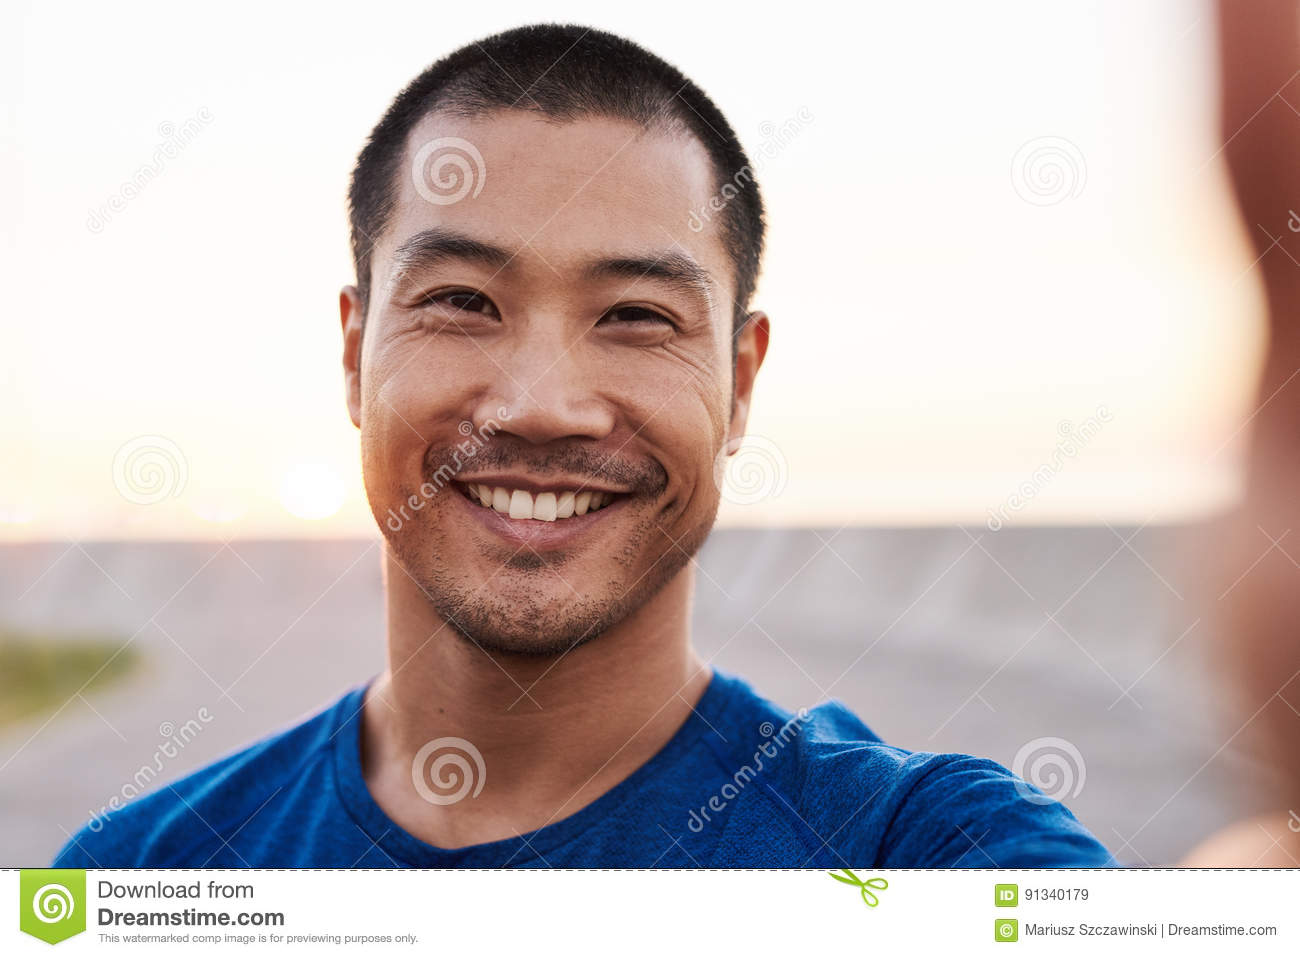 Asian men photograph